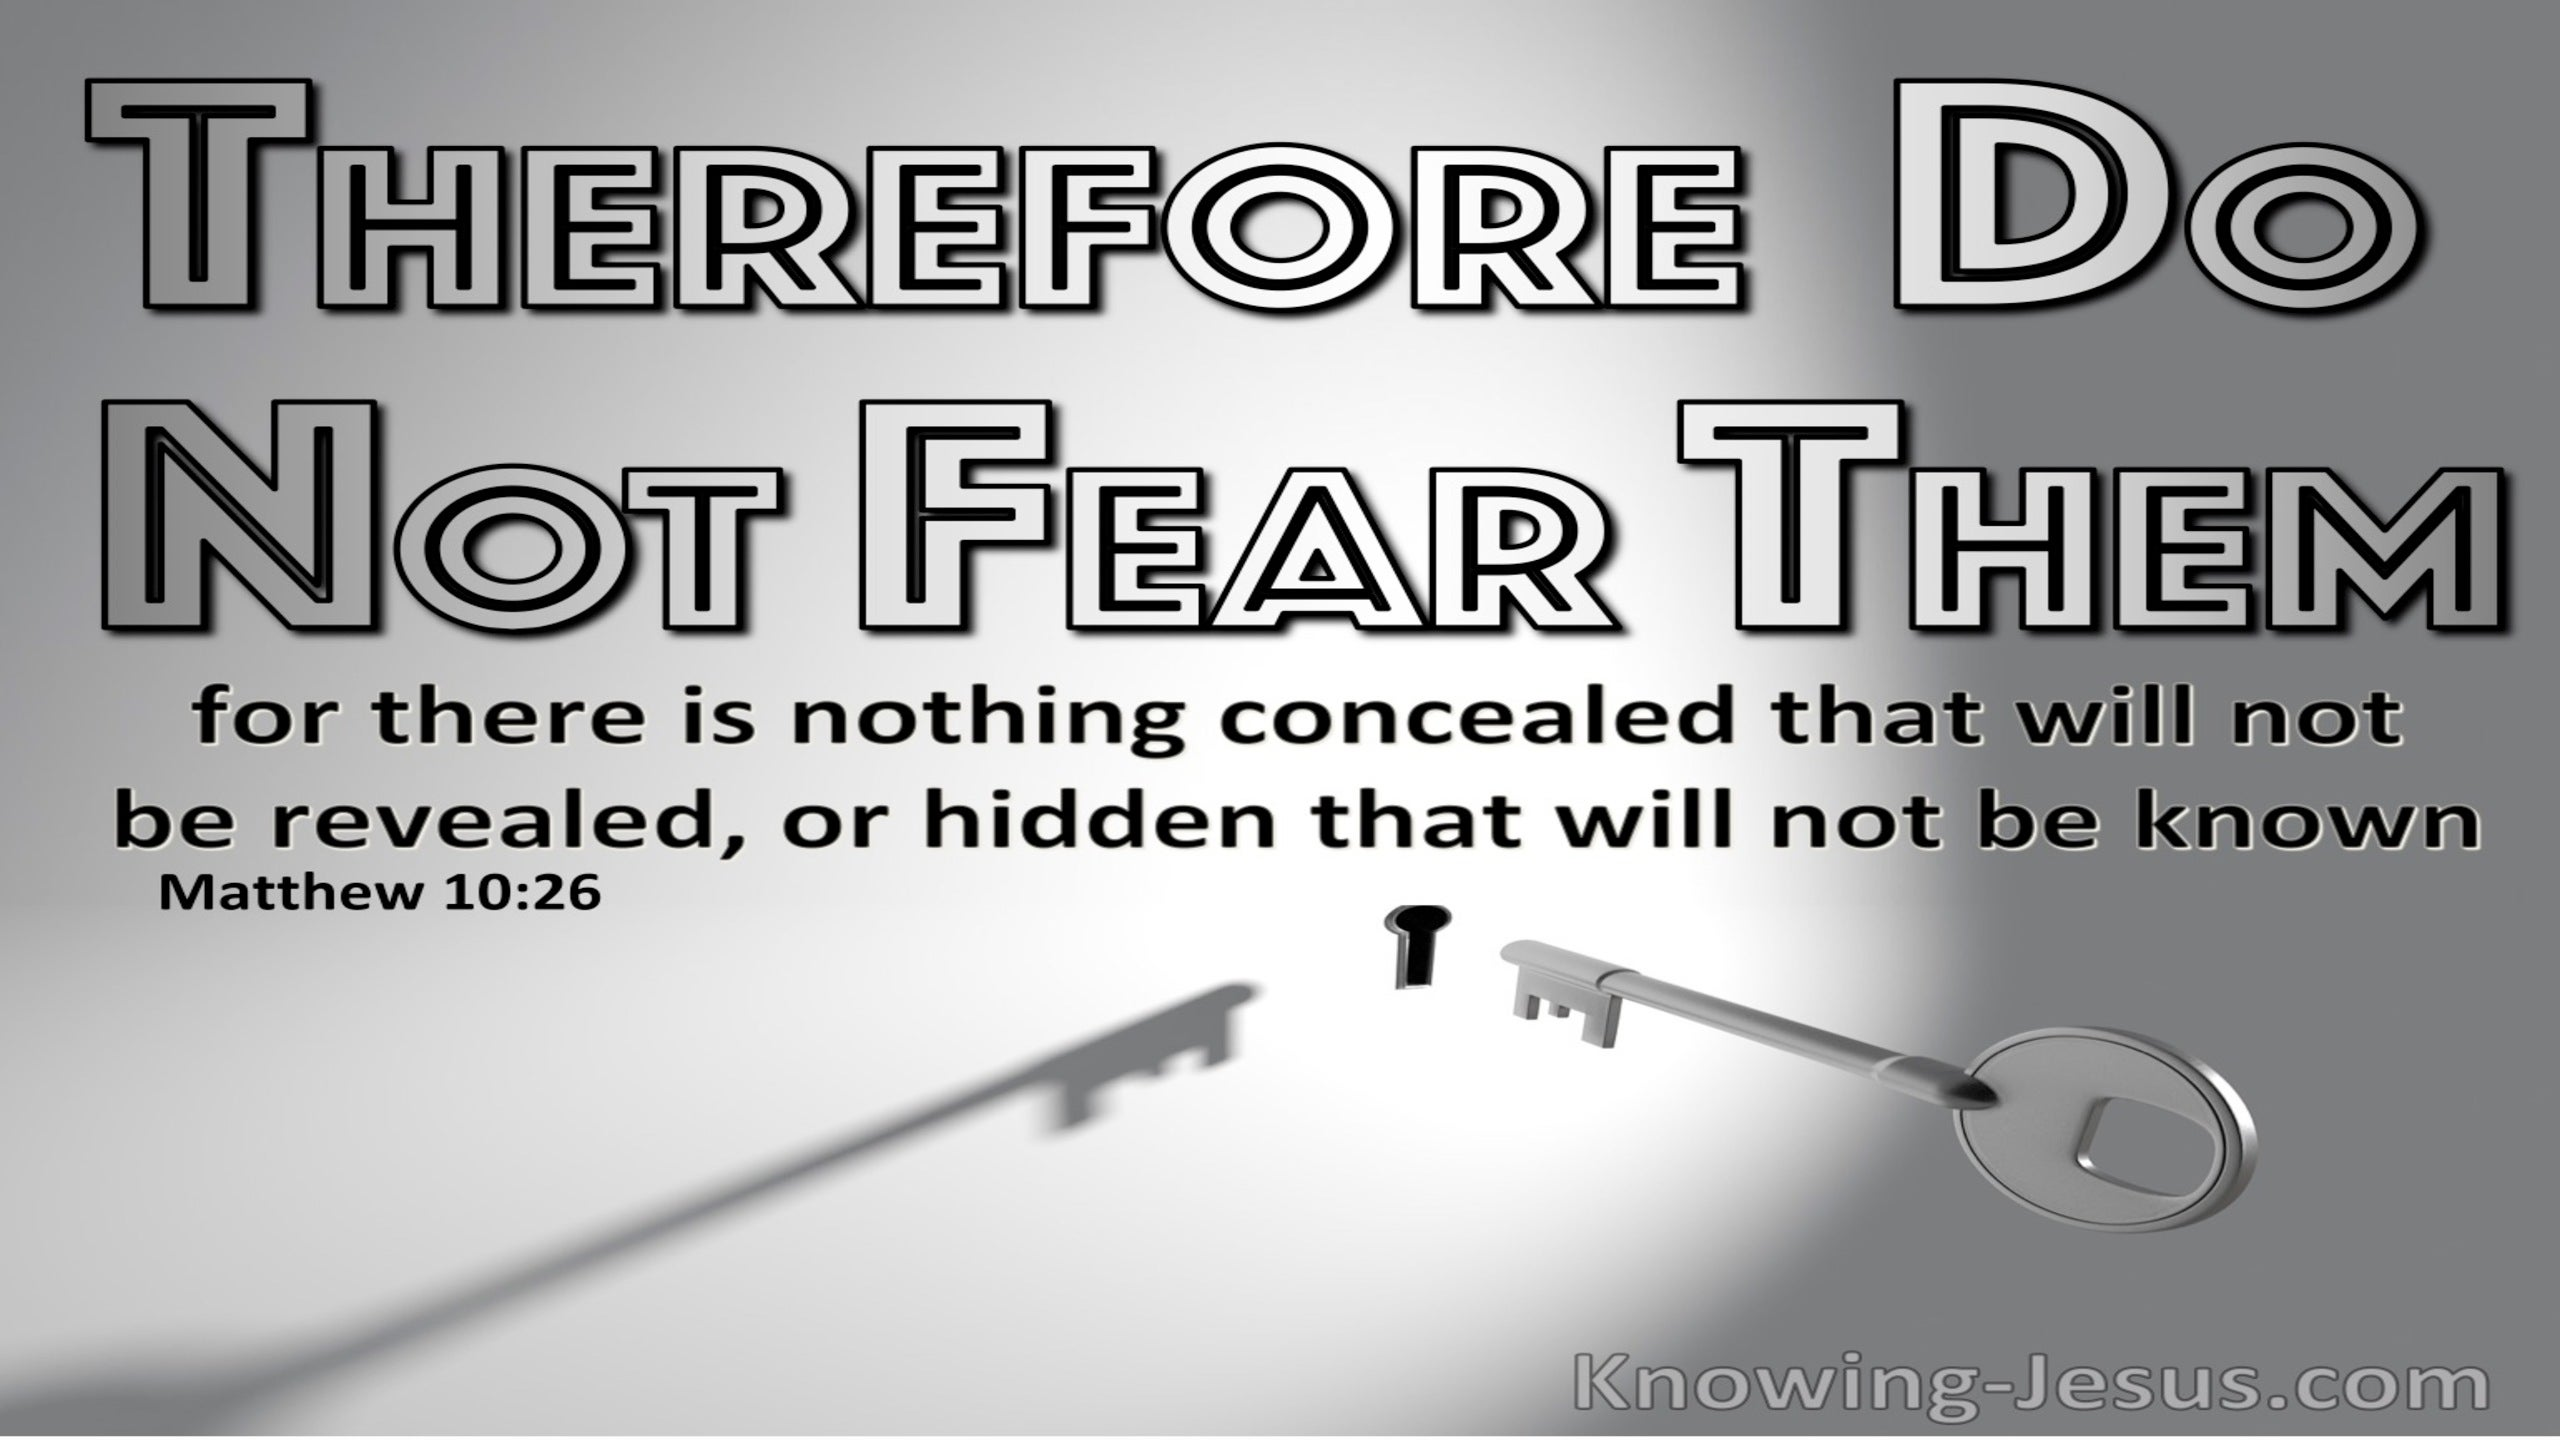 Matthew 10:26 Do Not Fear Them Nothing Hidden WIll Not Be Made Known (silver)